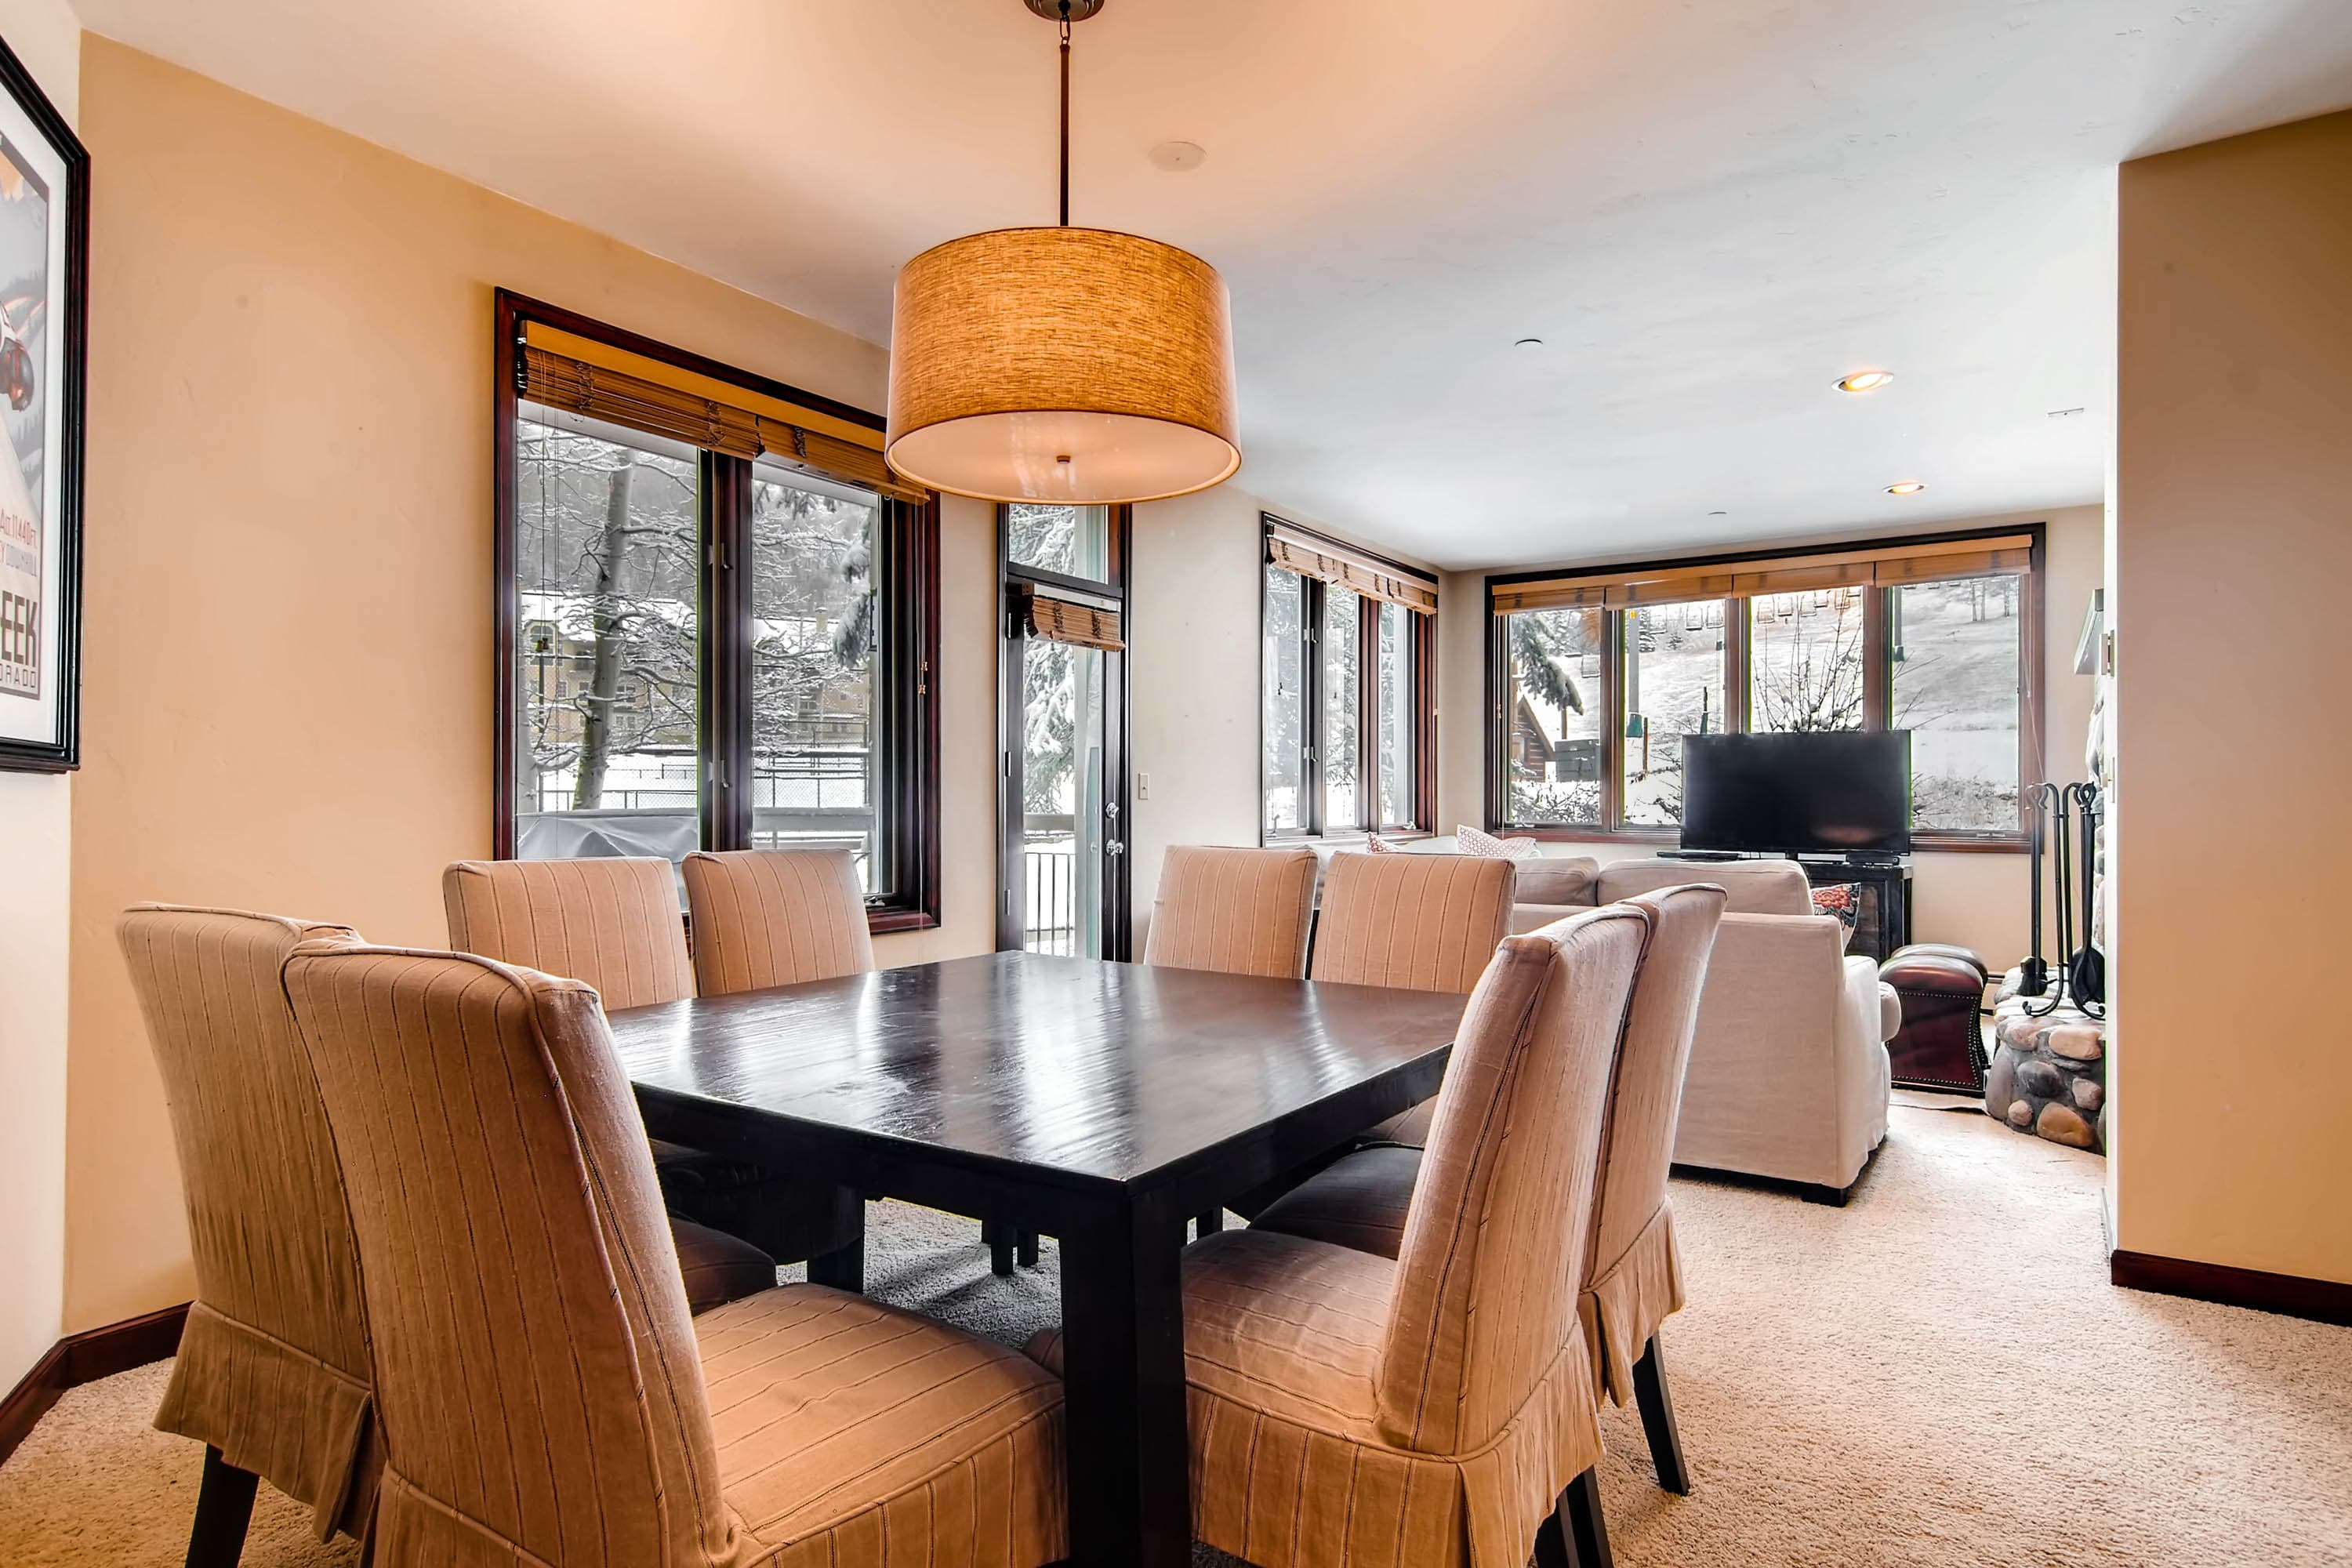 Property Image 1 - Large Comfortable Condo in Beaver Creek with Ski Access